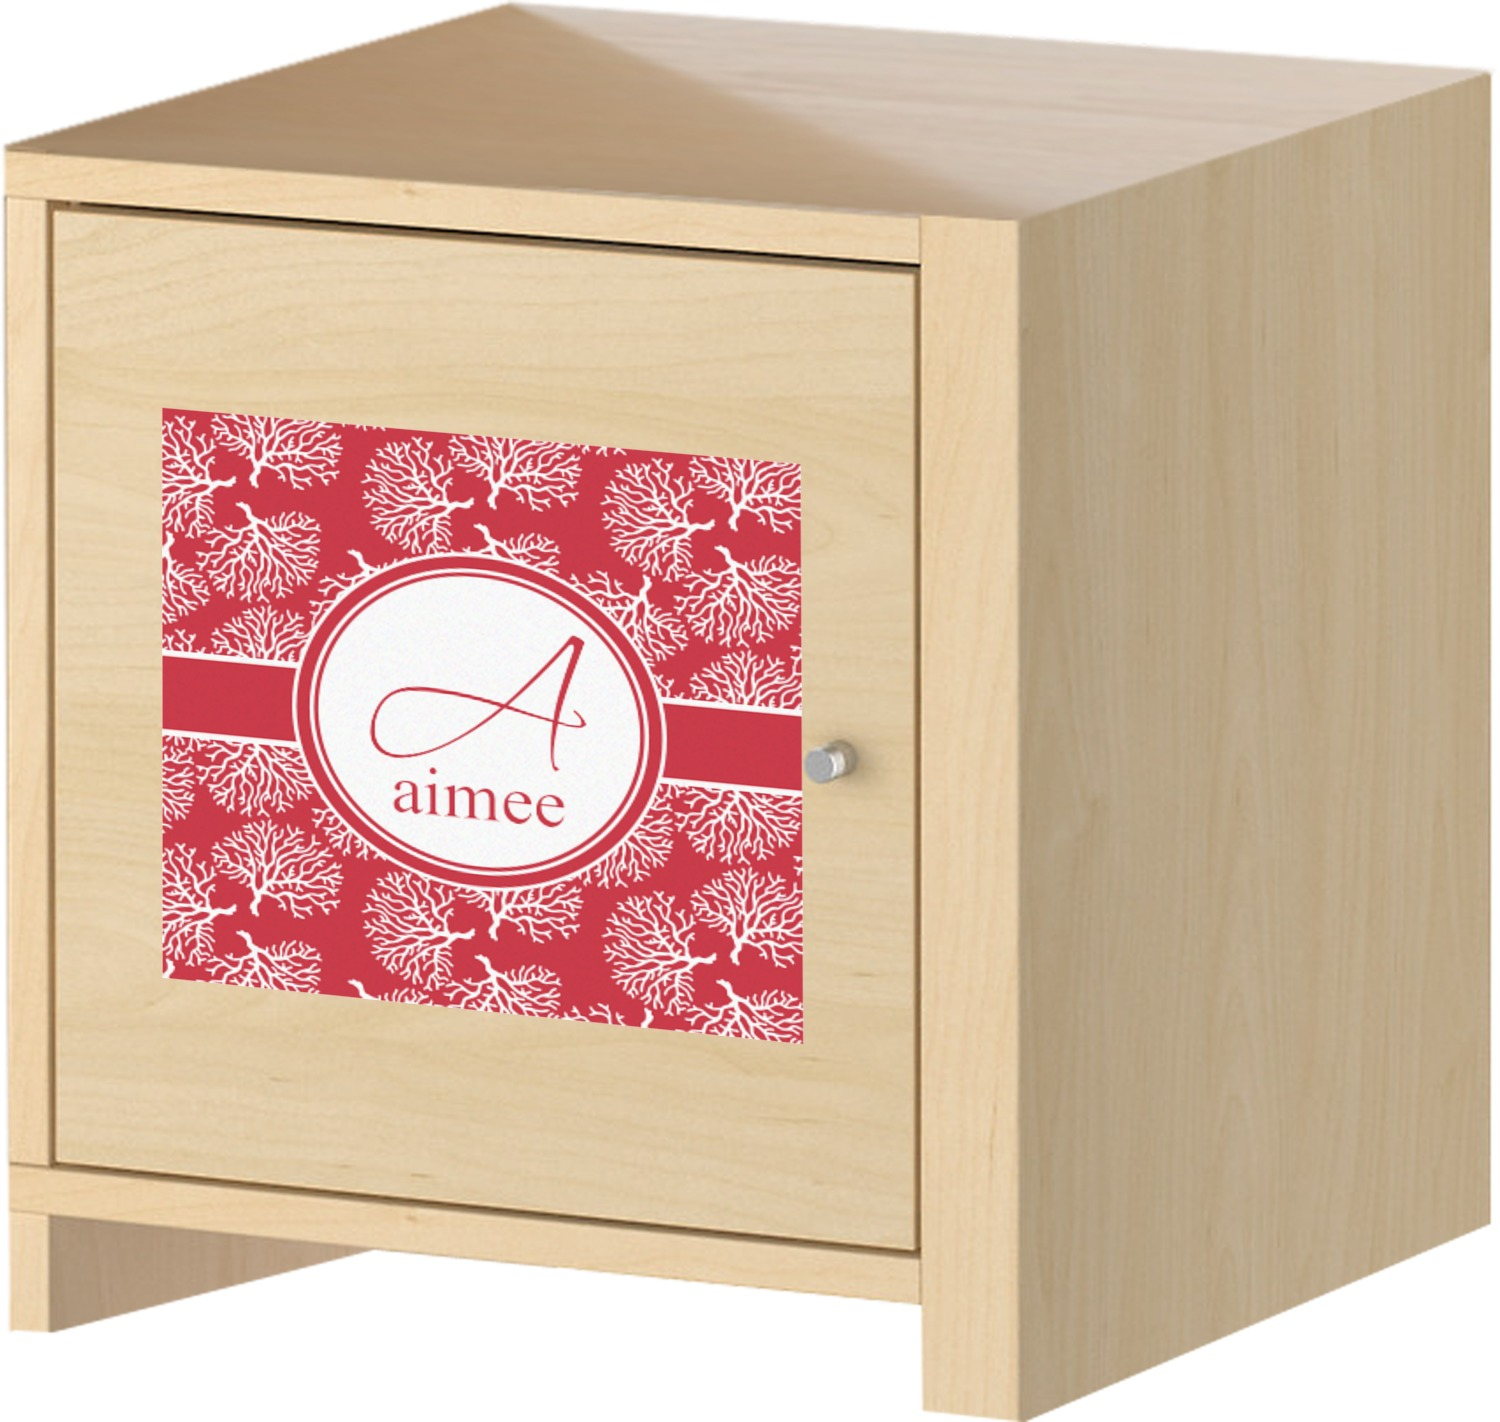 Coral Square Decal Custom Size Personalized